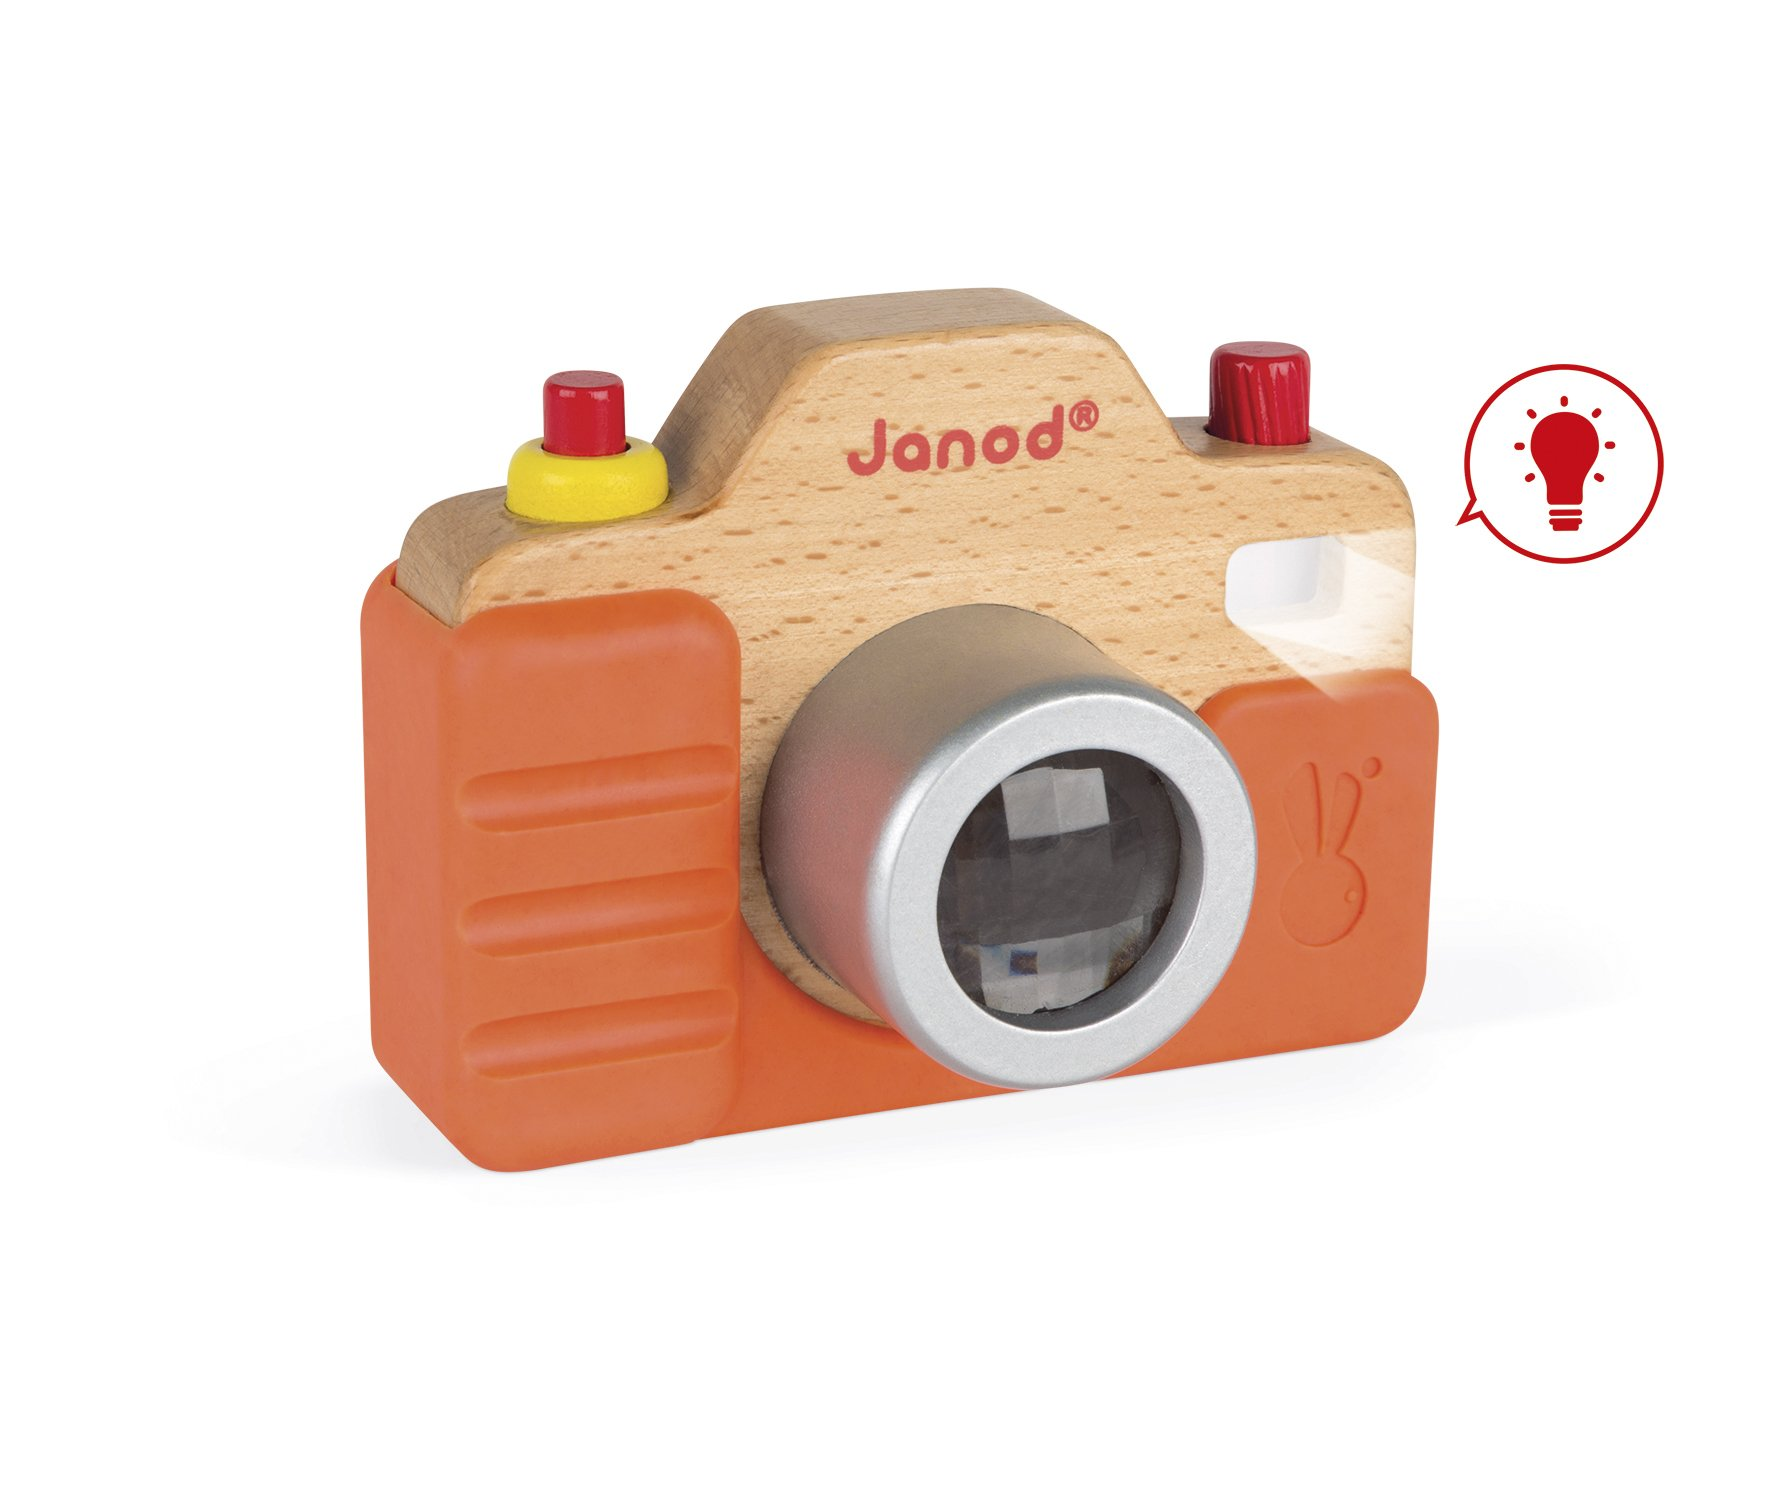 Janod Wooden Interactive Sound Camera Toy